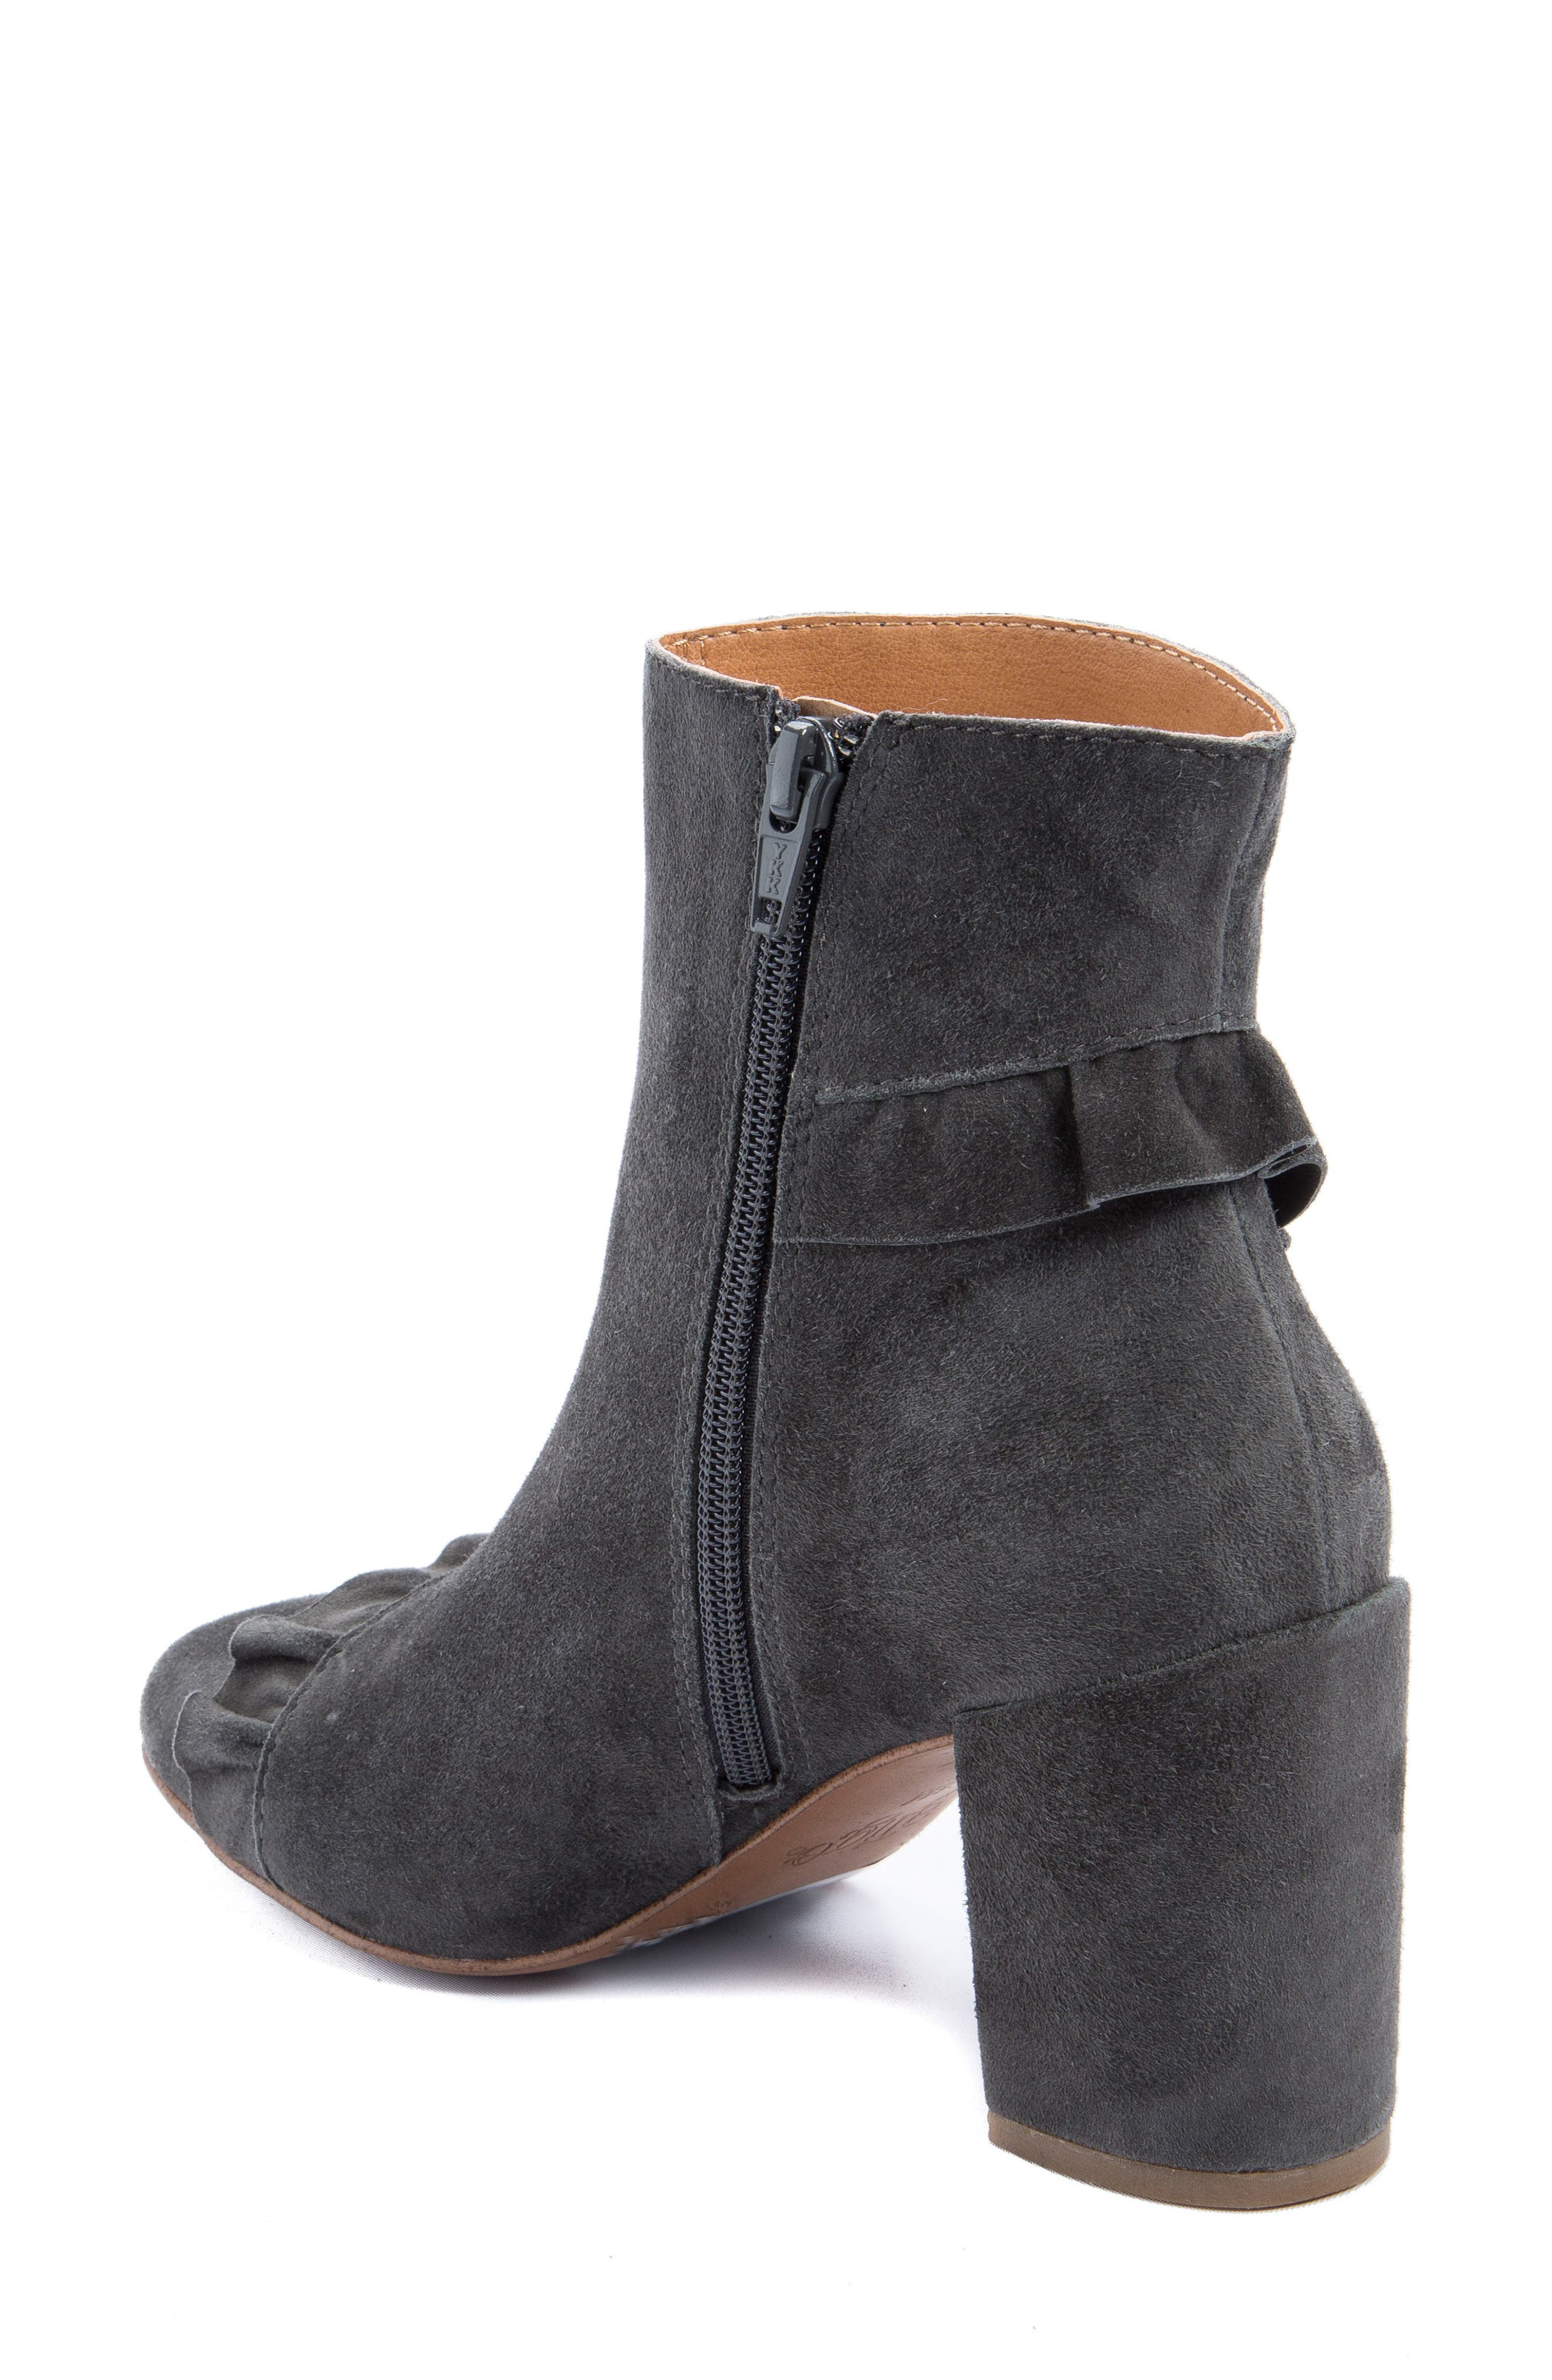 Kahlia Ruffle Bootie,                             Alternate thumbnail 2, color,                             Stone Suede